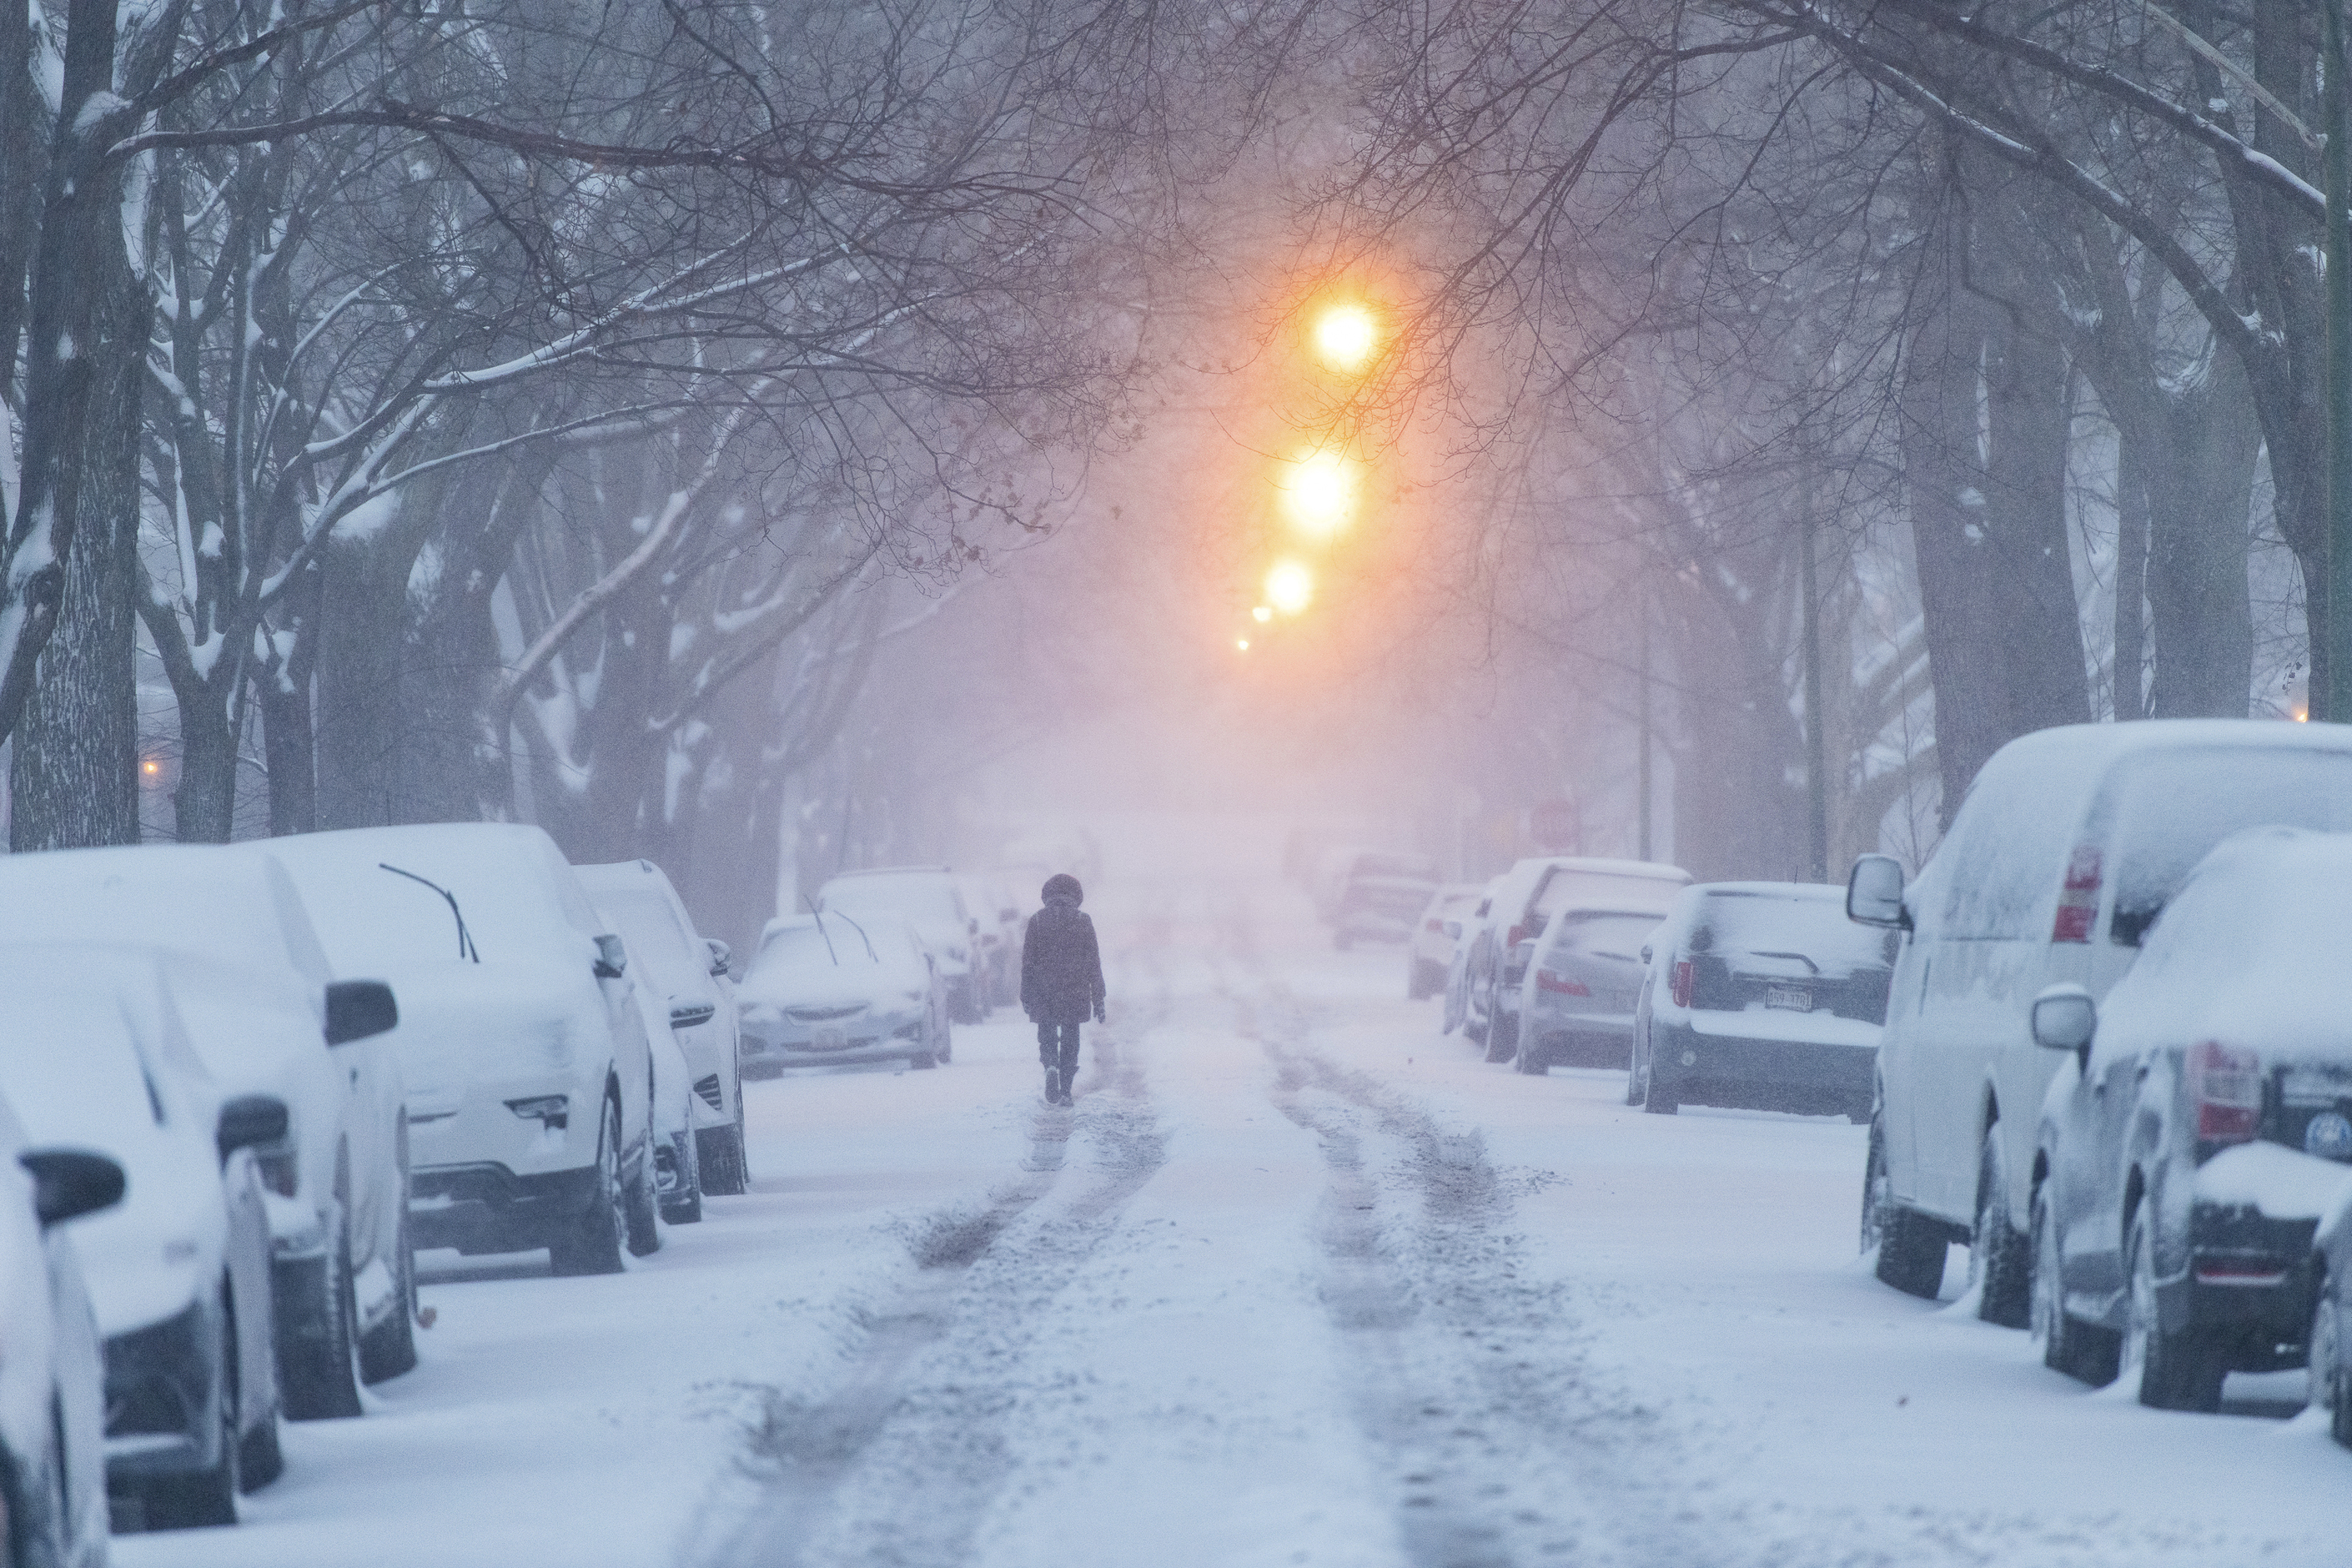 A woman walks down Glenlake Avenue towards North Clark Street as a winter storm batters Chicago, Saturday, Jan. 19, 2019, in Chicago. (Tyler LaRiviere/Chicago Sun-Times via AP)